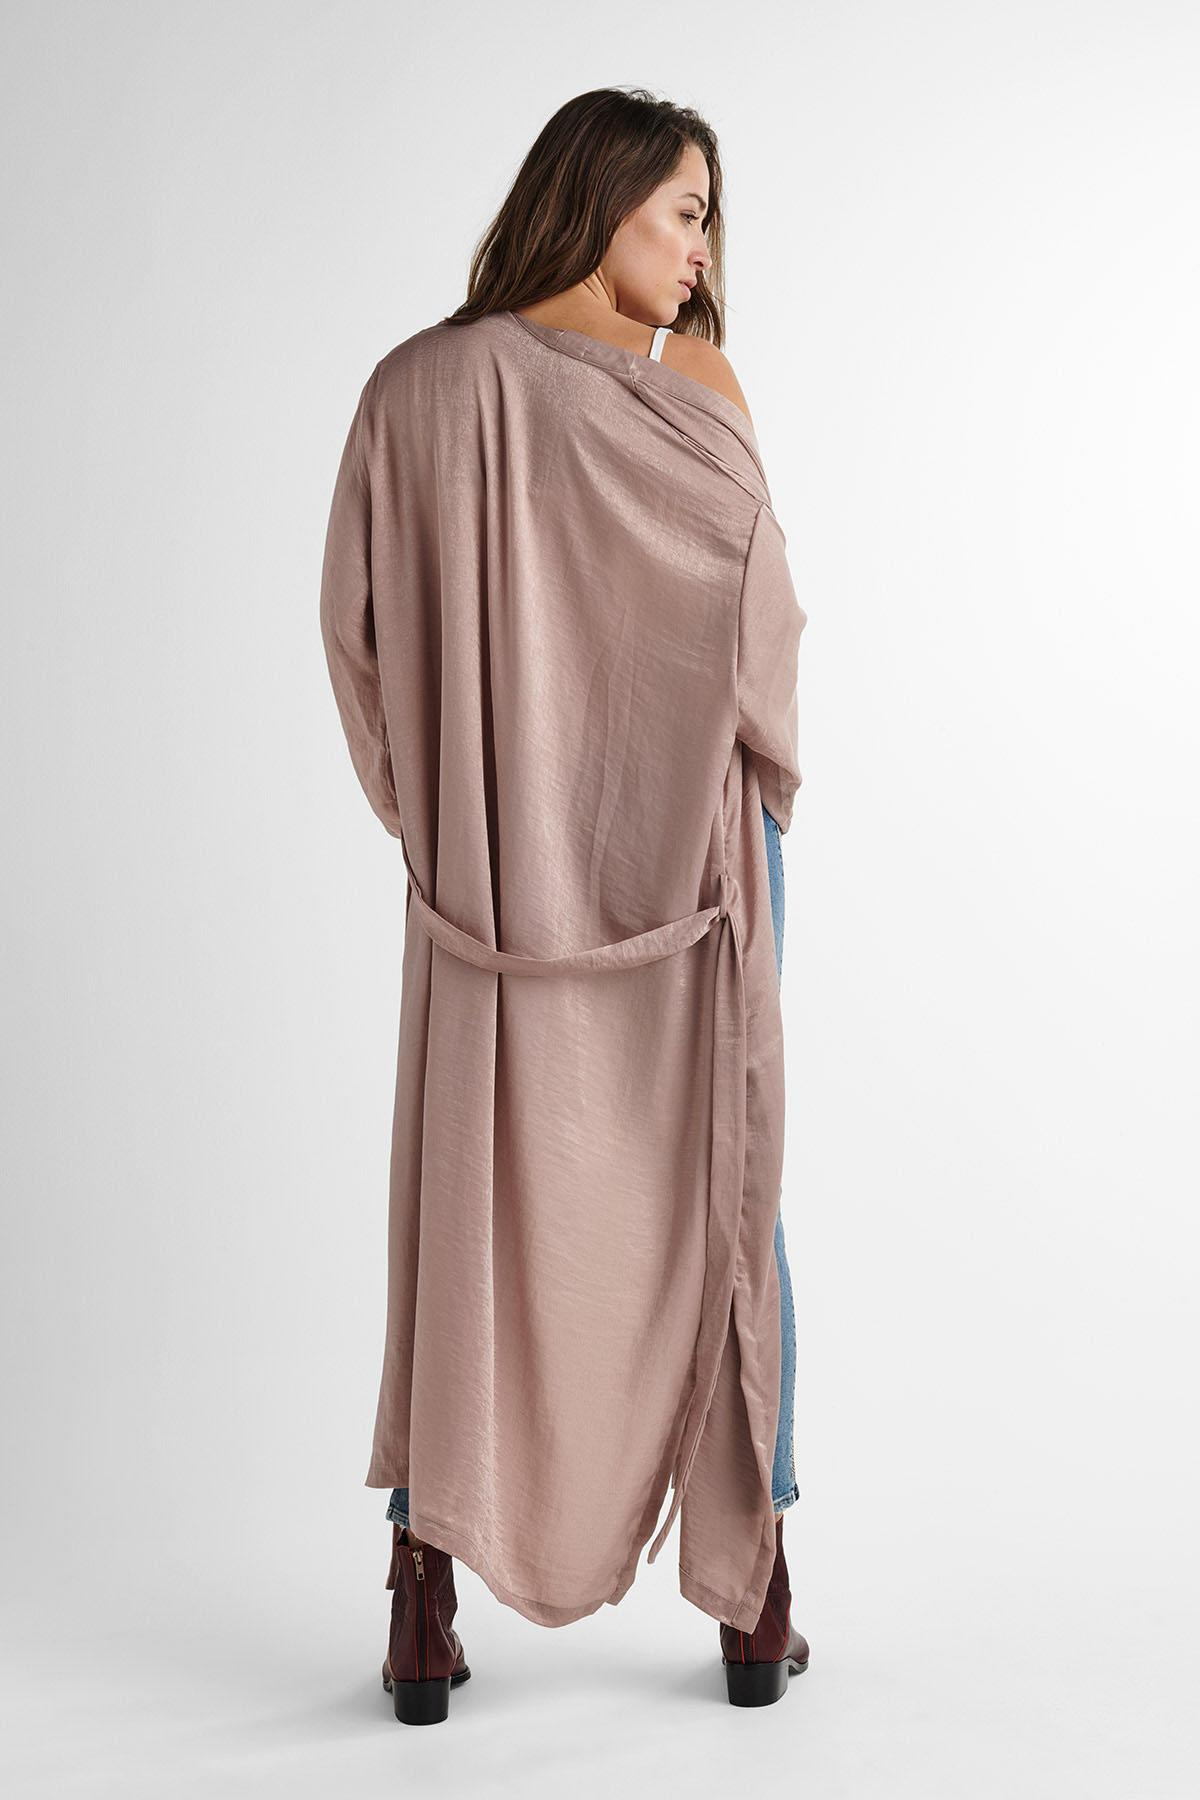 Hudson - Multicolor Stillwater The Morning Robe - Lyst. View fullscreen 1533a3a08